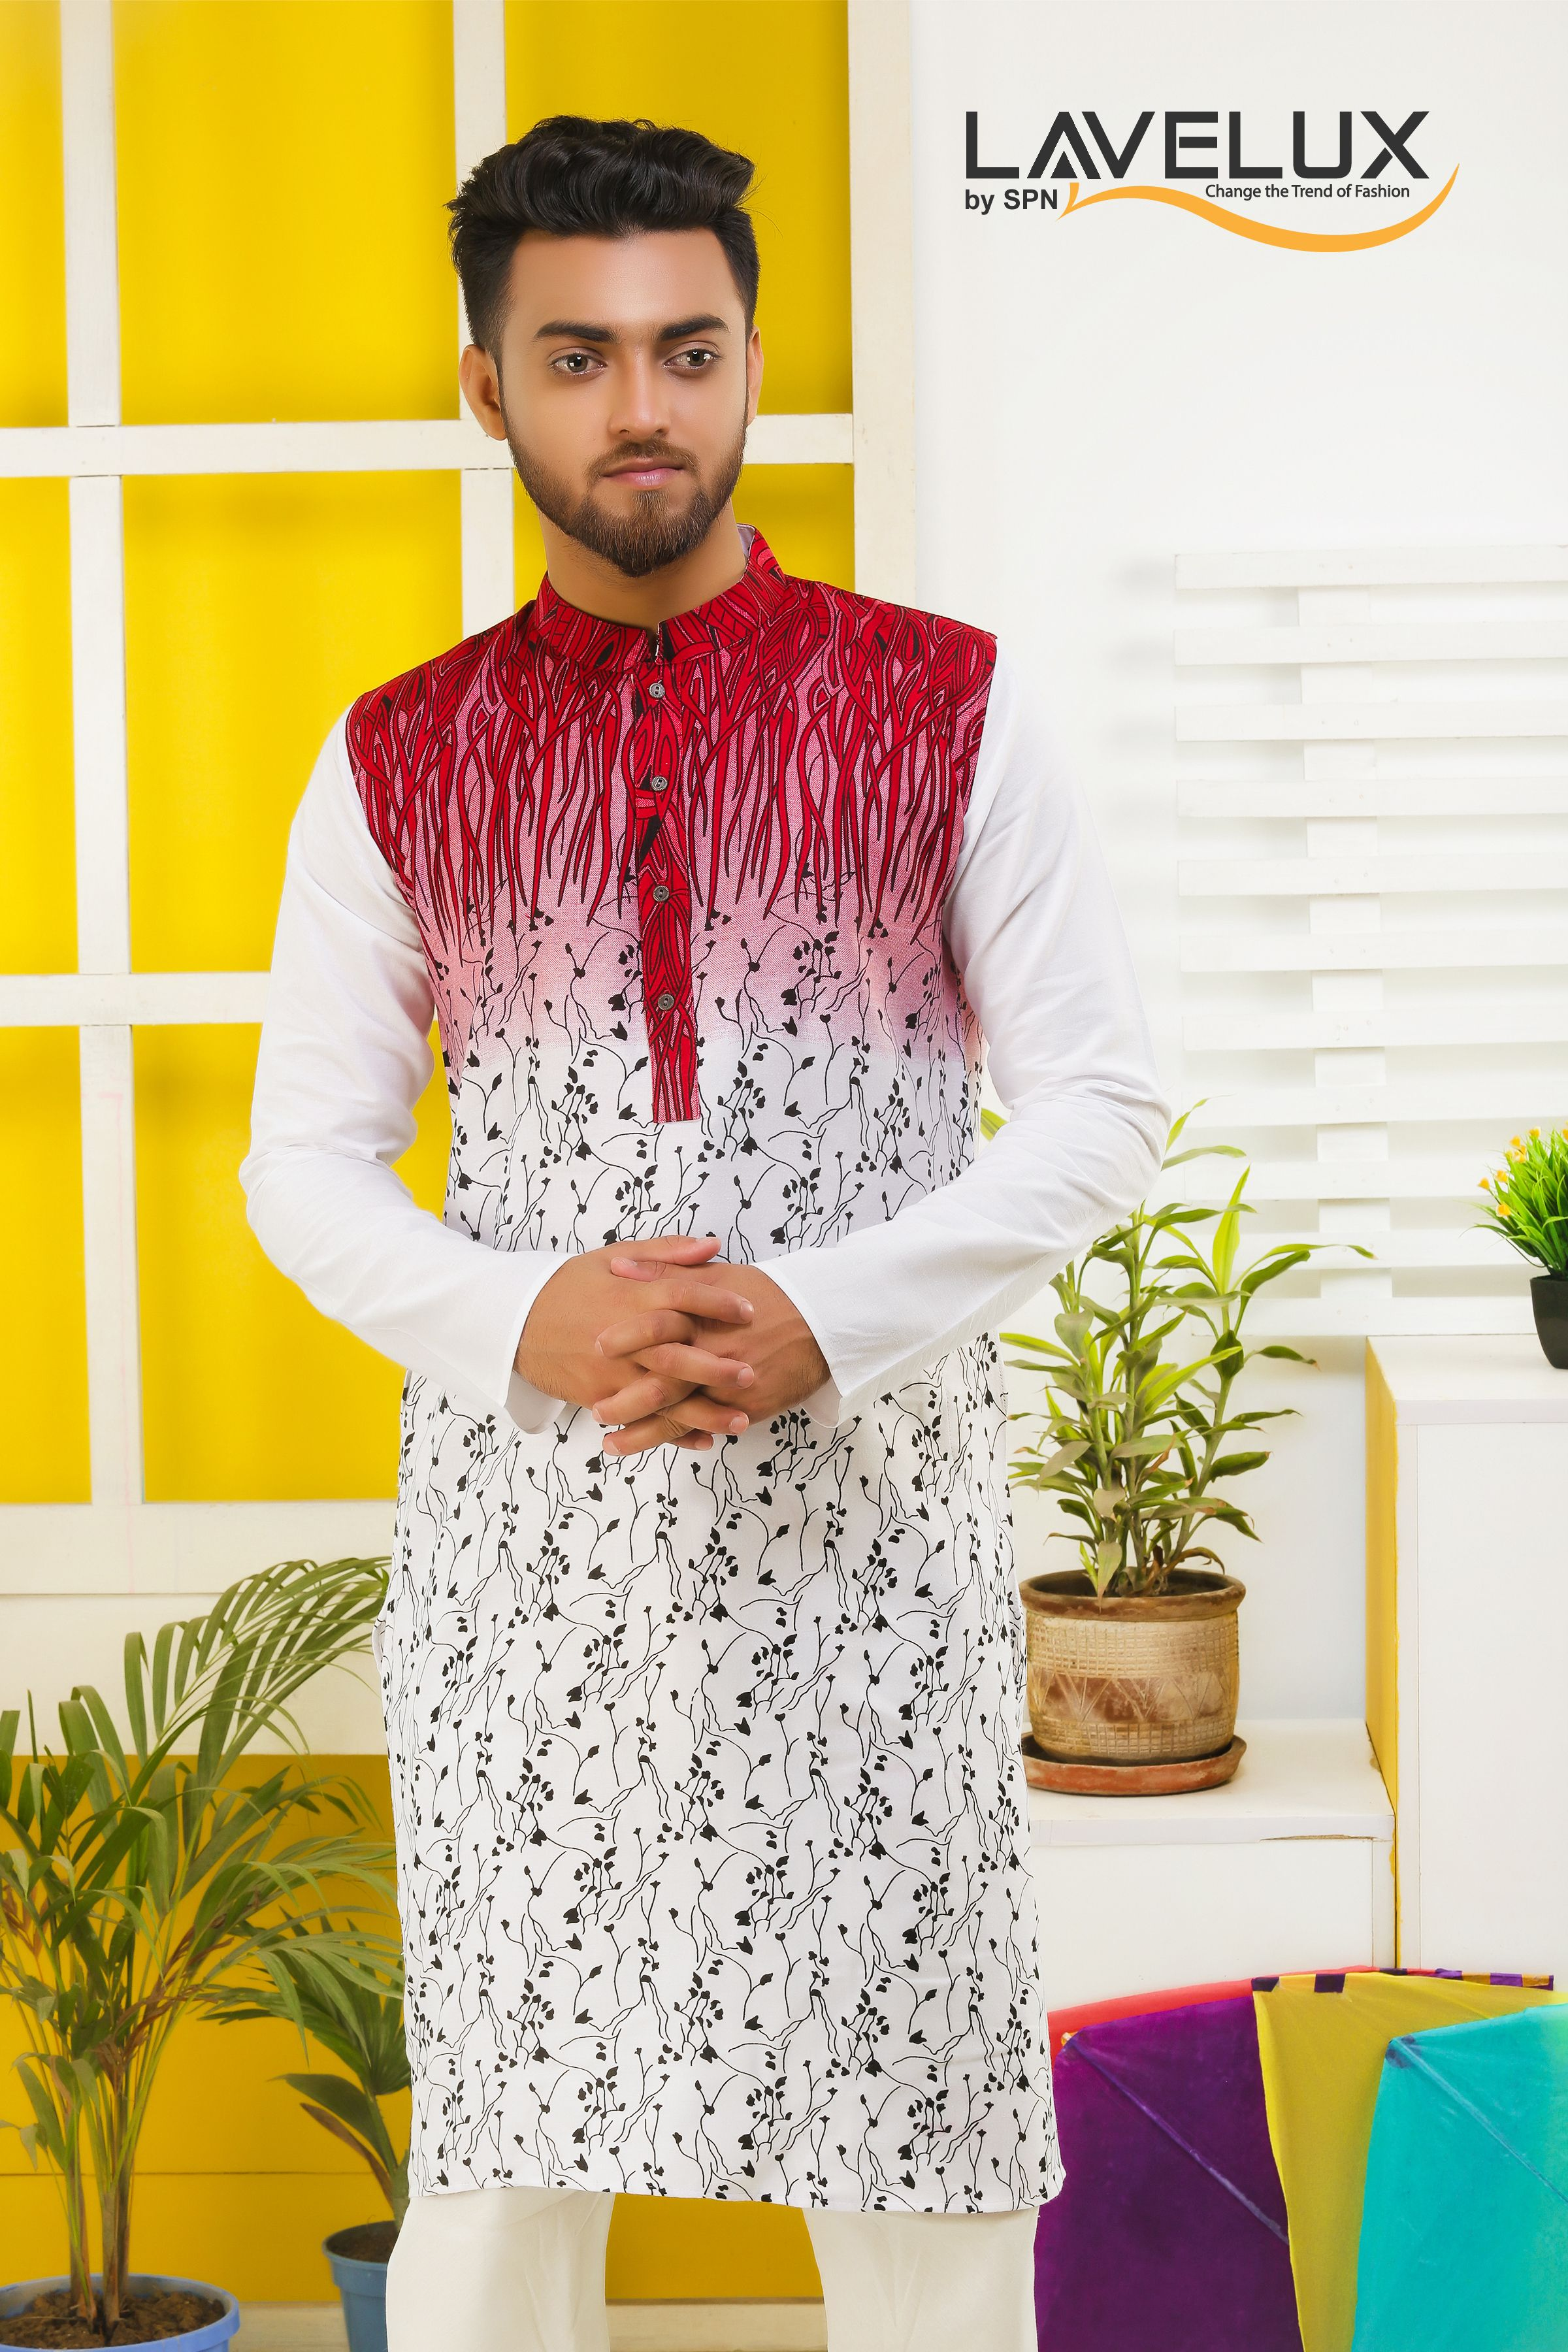 682c5992d5 Pohela boishakh collection 2019! LAVELUX fashion brand Men's Panjabi  Exclusive Collection: Slim Fit Panjabi, Printed ... Call for Order  01977005575 / Shop ...